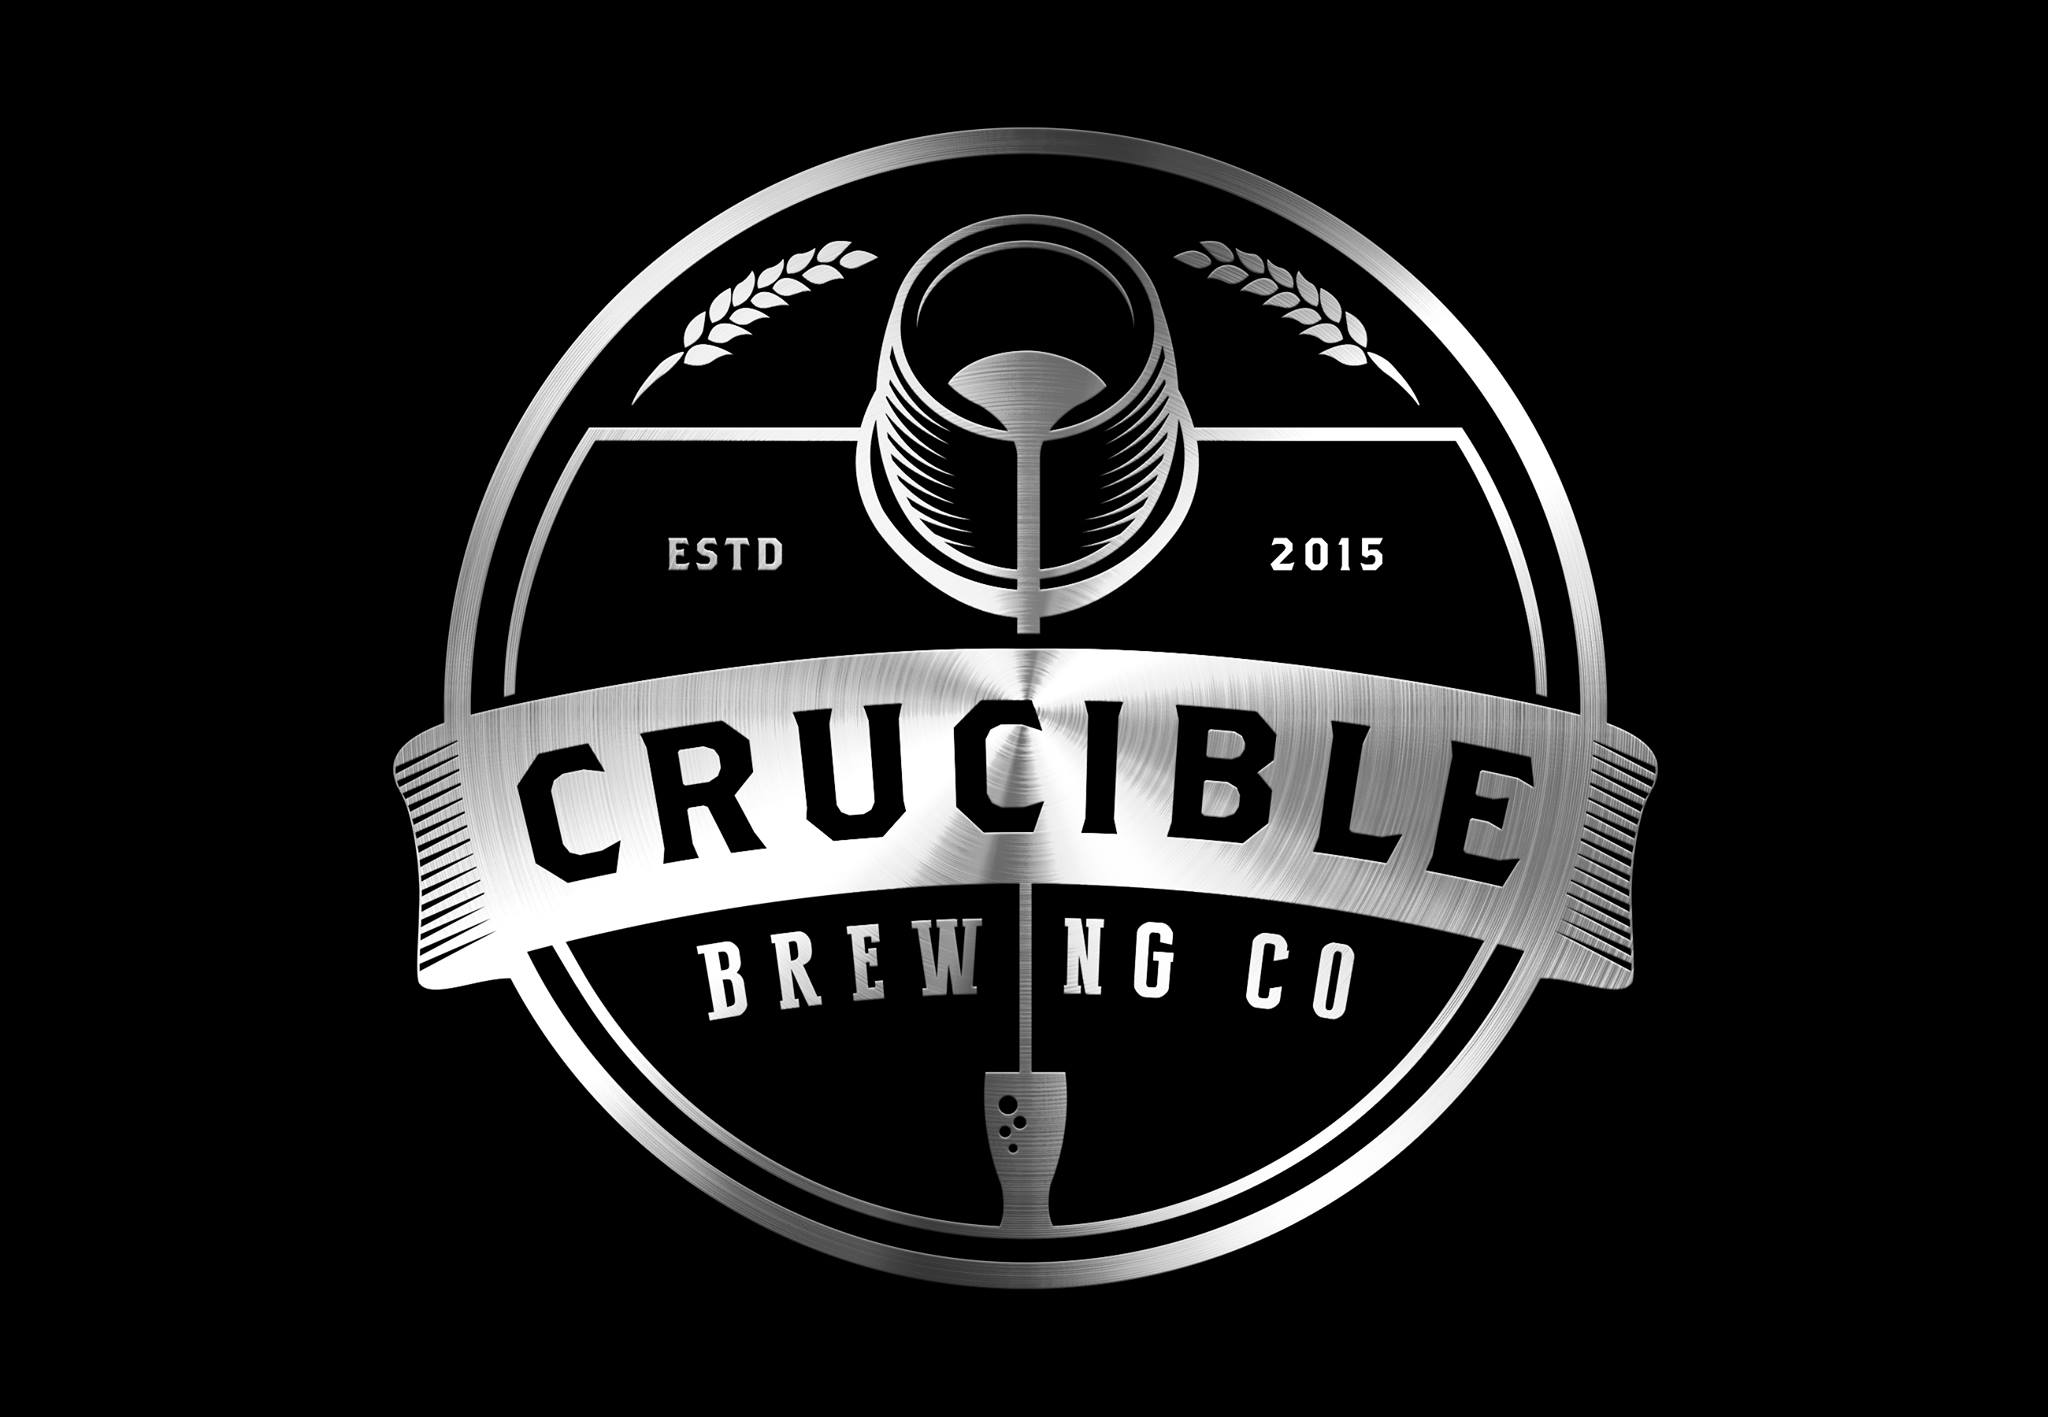 Company logo of Crucible Brewing - Woodinville Forge